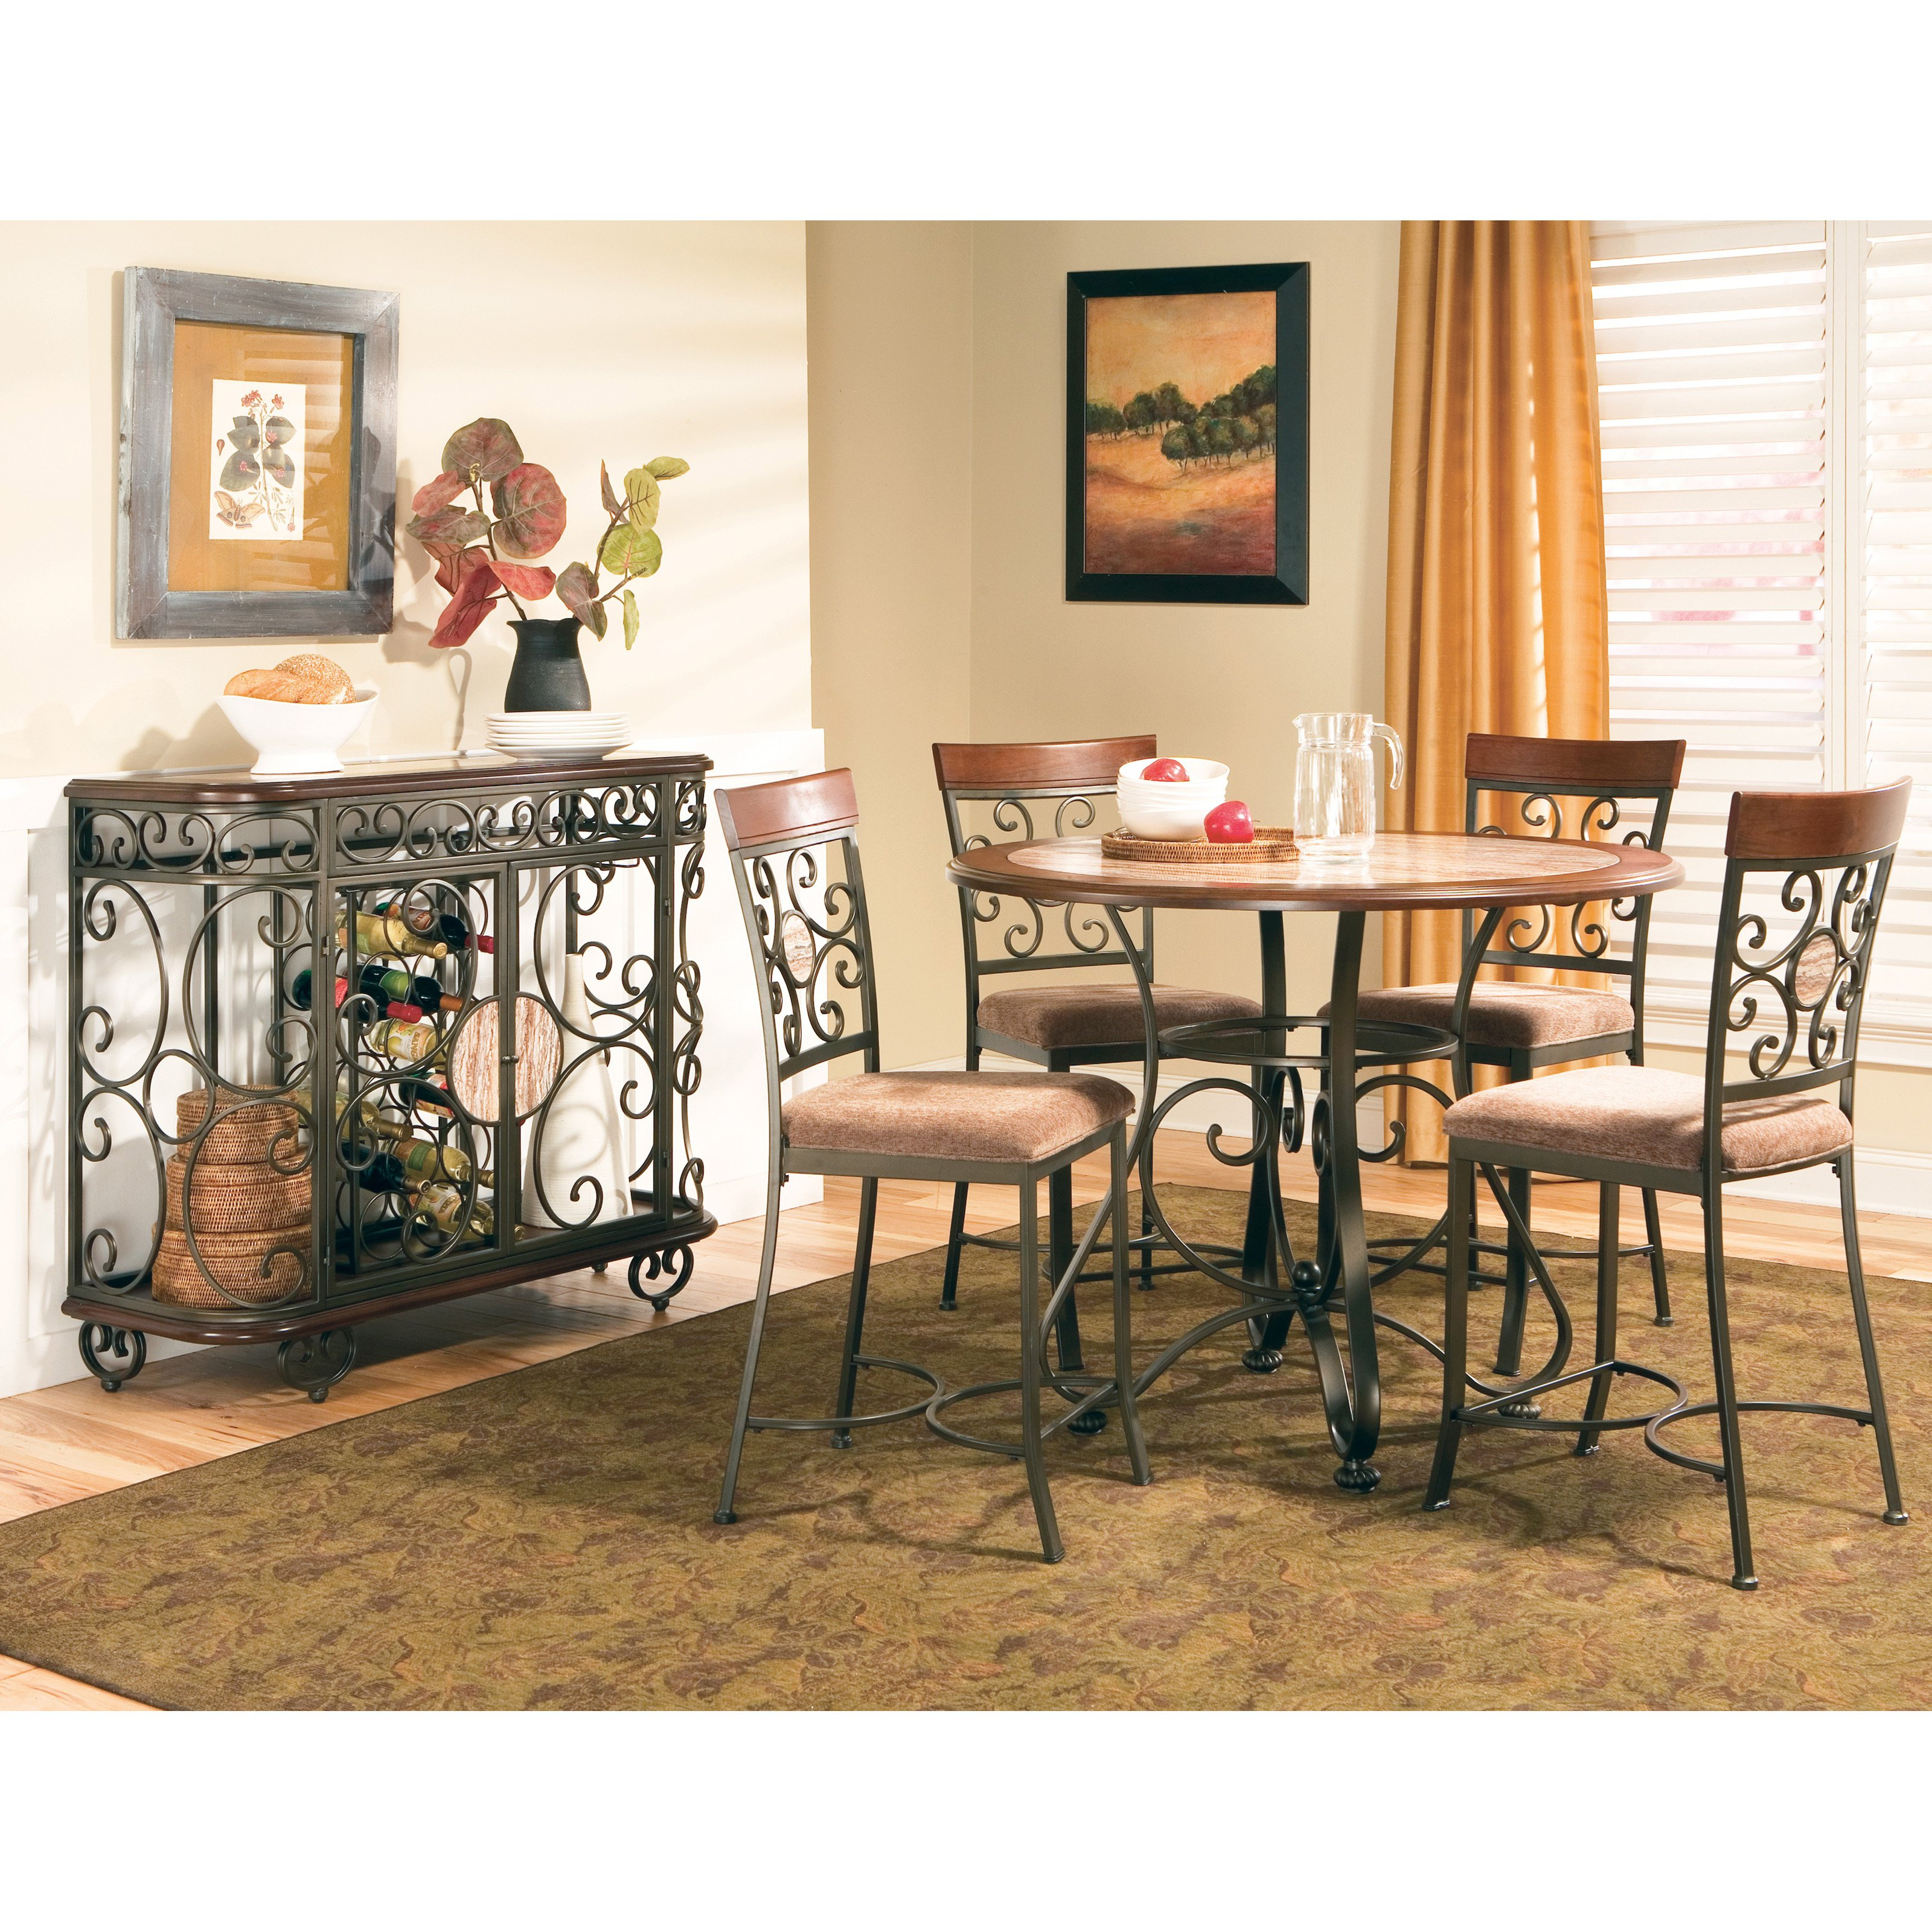 Steve Silver Thompson Counter Height Chairs - Cherry - Set of 2